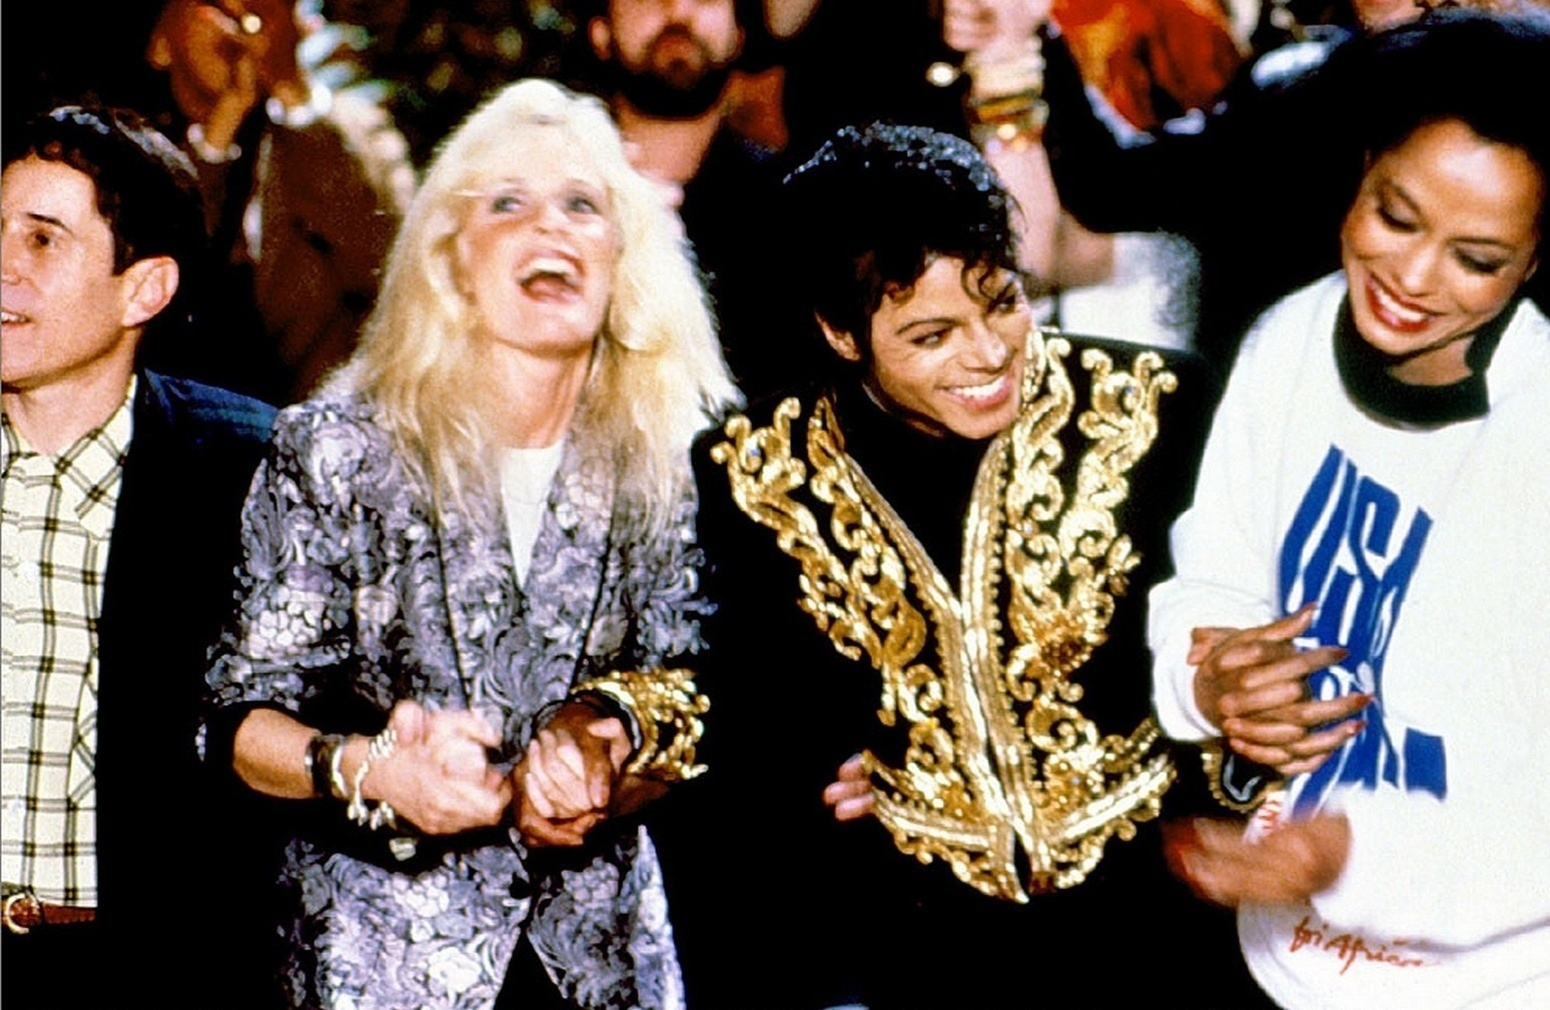 Paul Simon, Kim Carnes, Michael Jackson e Diana Ross em cena do clipe da música